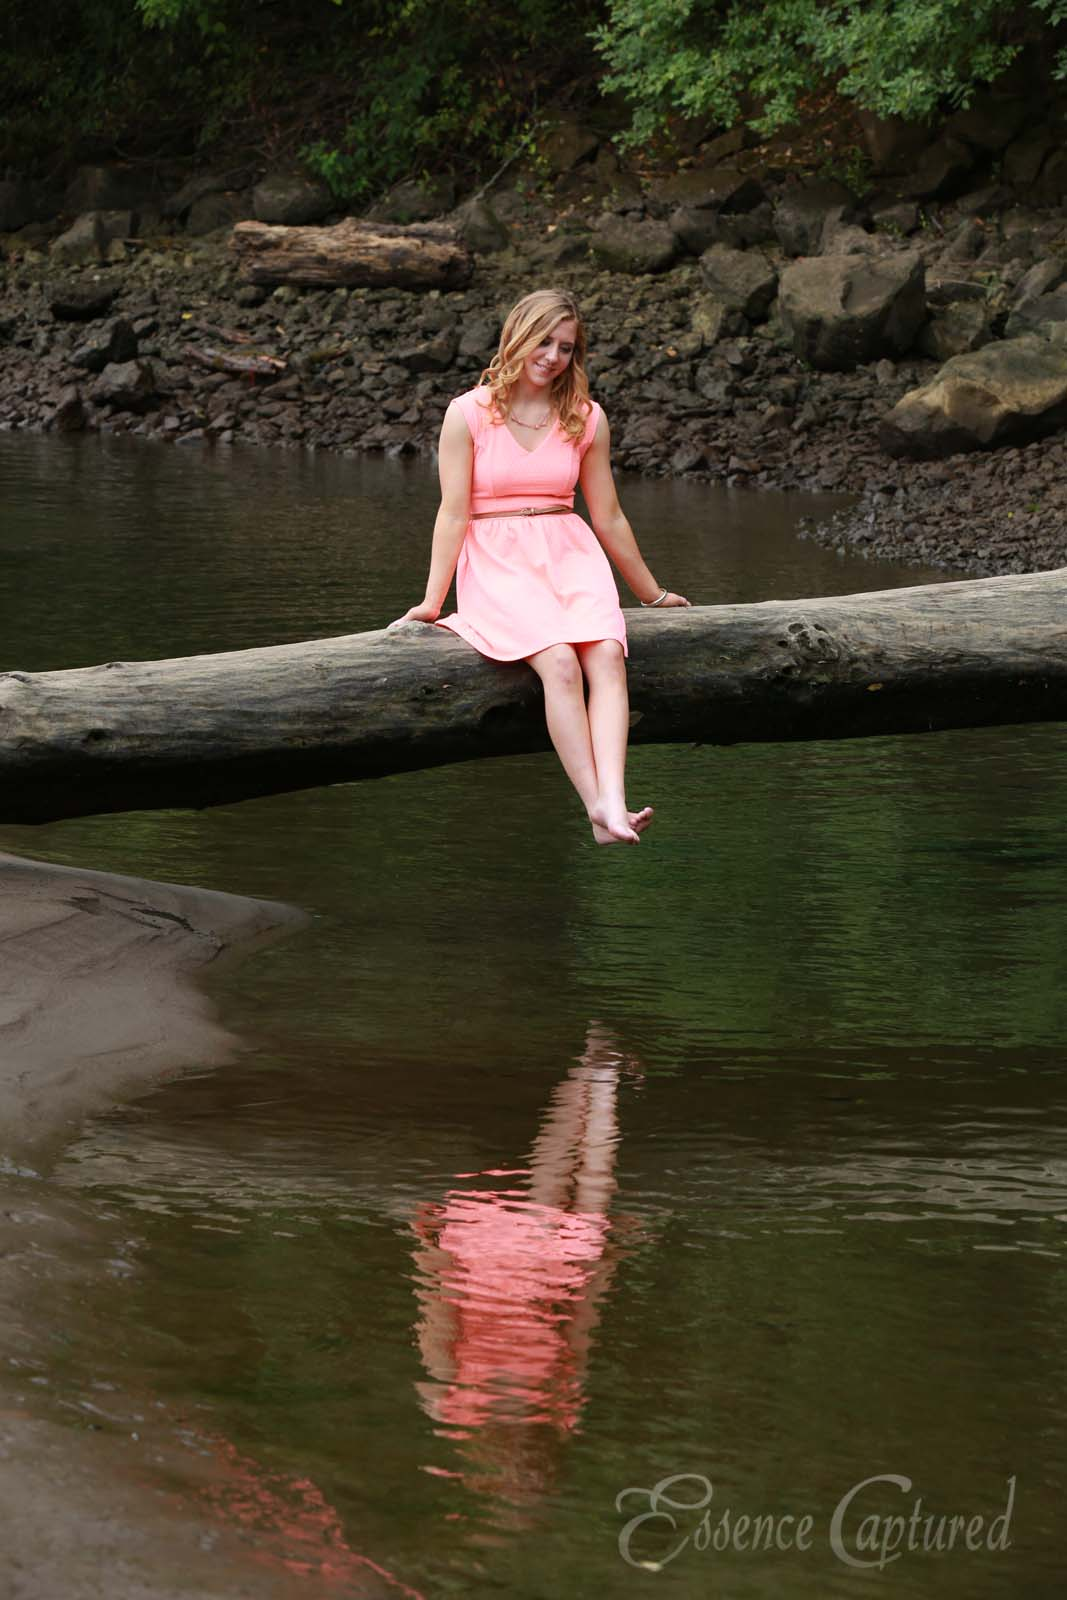 female high school senior portrait peach dress long blonde hair sitting on log above river reflection in water